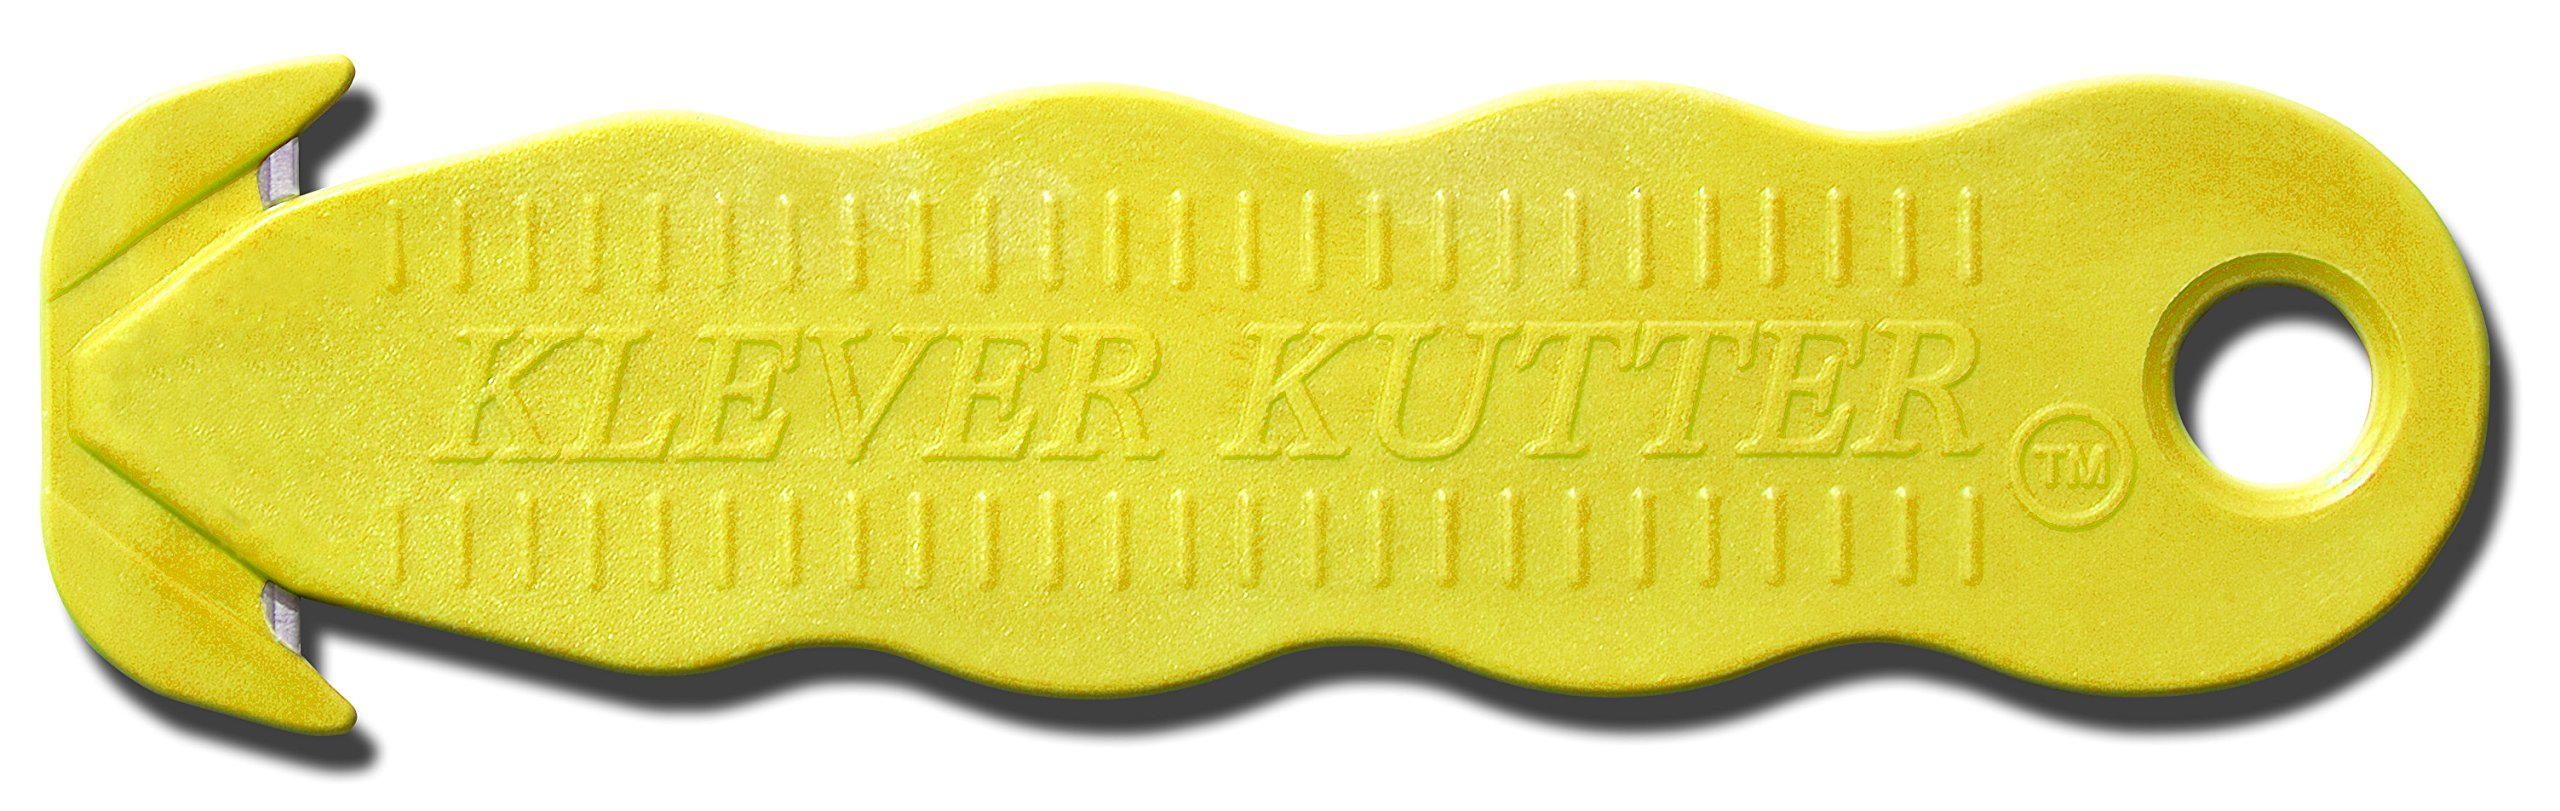 Klever Innovations KCJ-1Y Safety Cutter, Advanced Plastic Polymers, 4-5/8'', Yellow (Pack of 10) by Klever Innovations